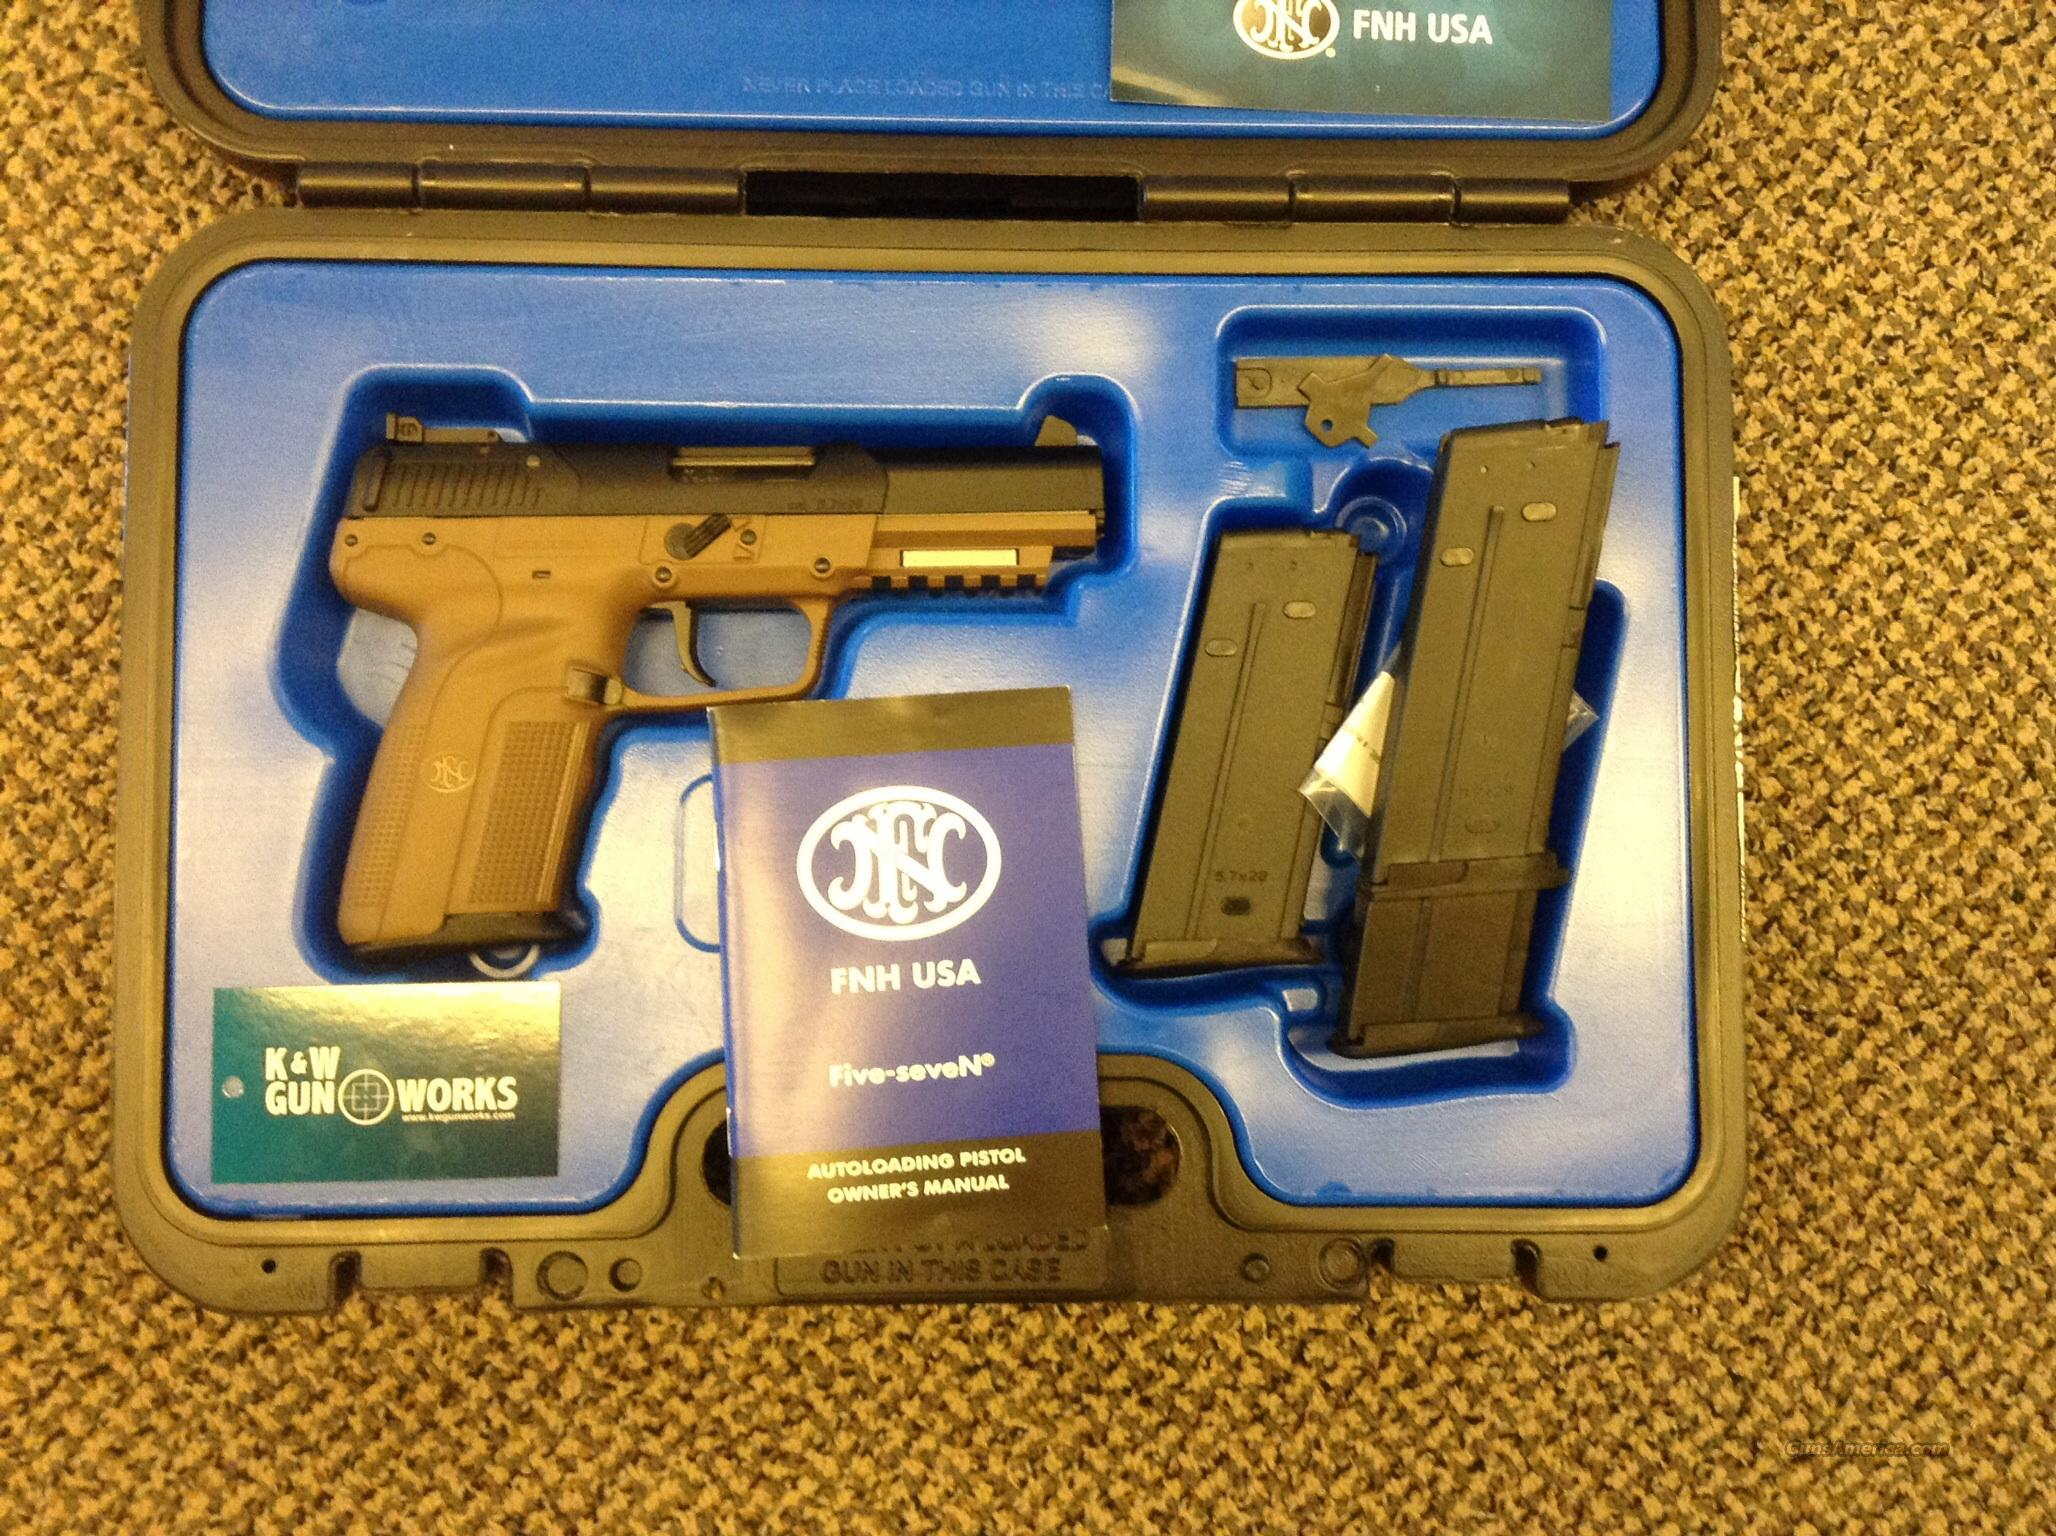 FN FIVE SEVEN PISTOL 5.7x28 PISTOL FLAT DARK EARTH NIB  Guns > Pistols > FNH - Fabrique Nationale (FN) Pistols > FiveSeven